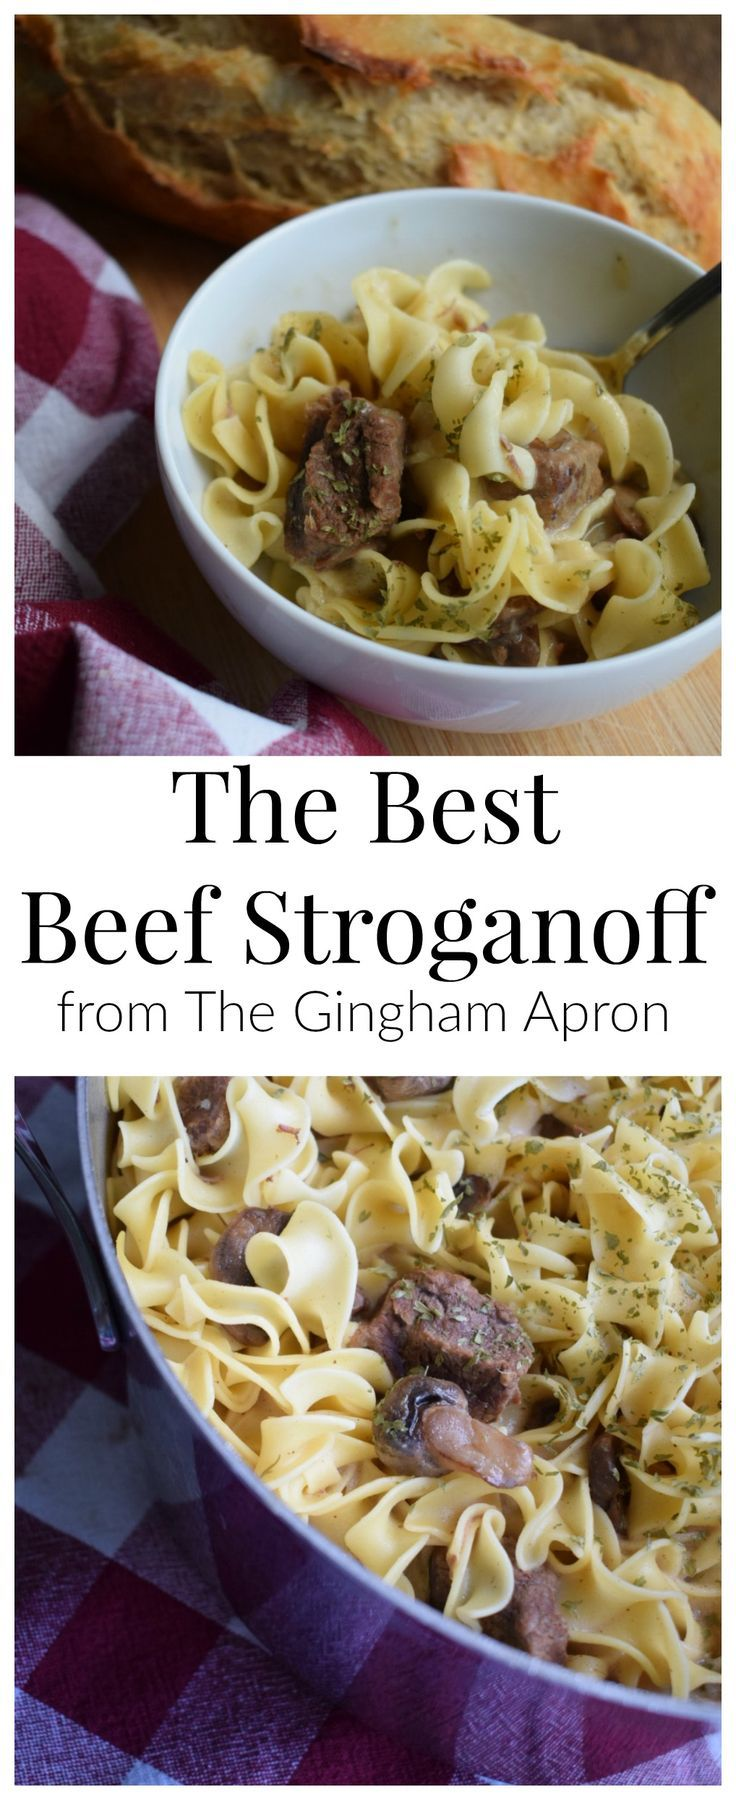 The BEST Beef Stronganoff! The Dijon mustard and dill makes this delicious pasta dish over the top!